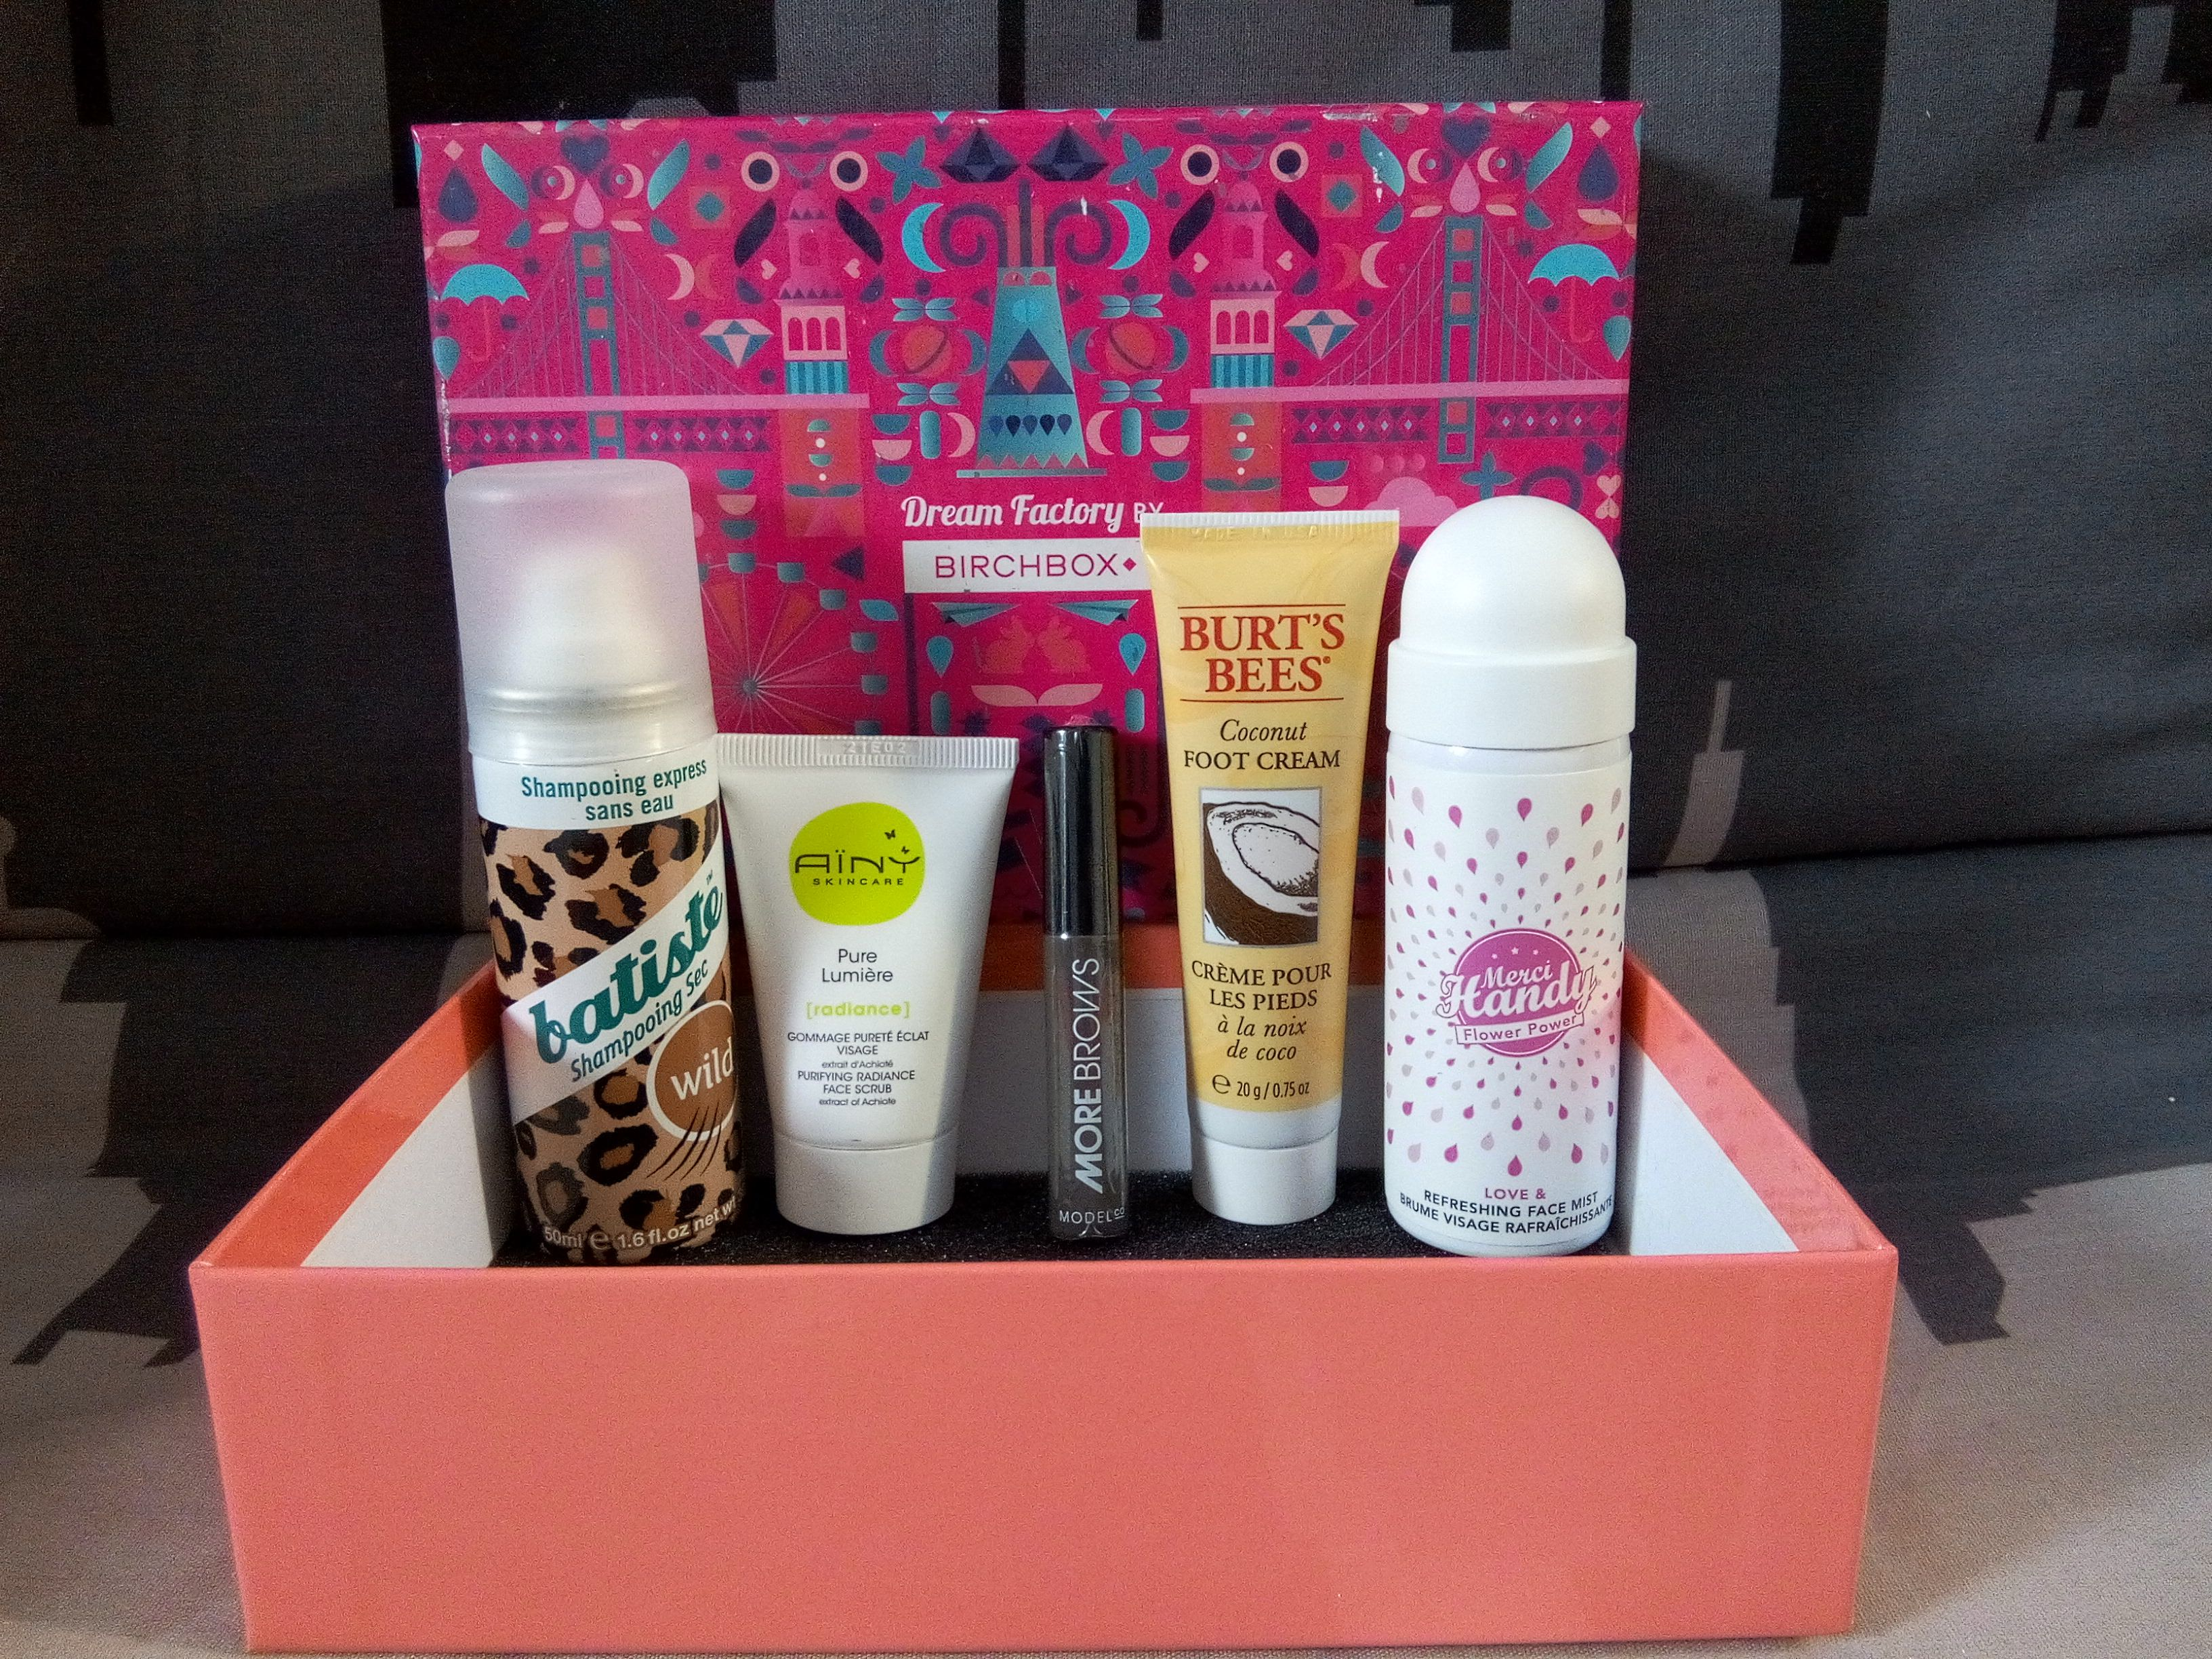 24 meilleures images du tableau Birchbox   Products, Hair conditioner et  Master s degree d93716320695